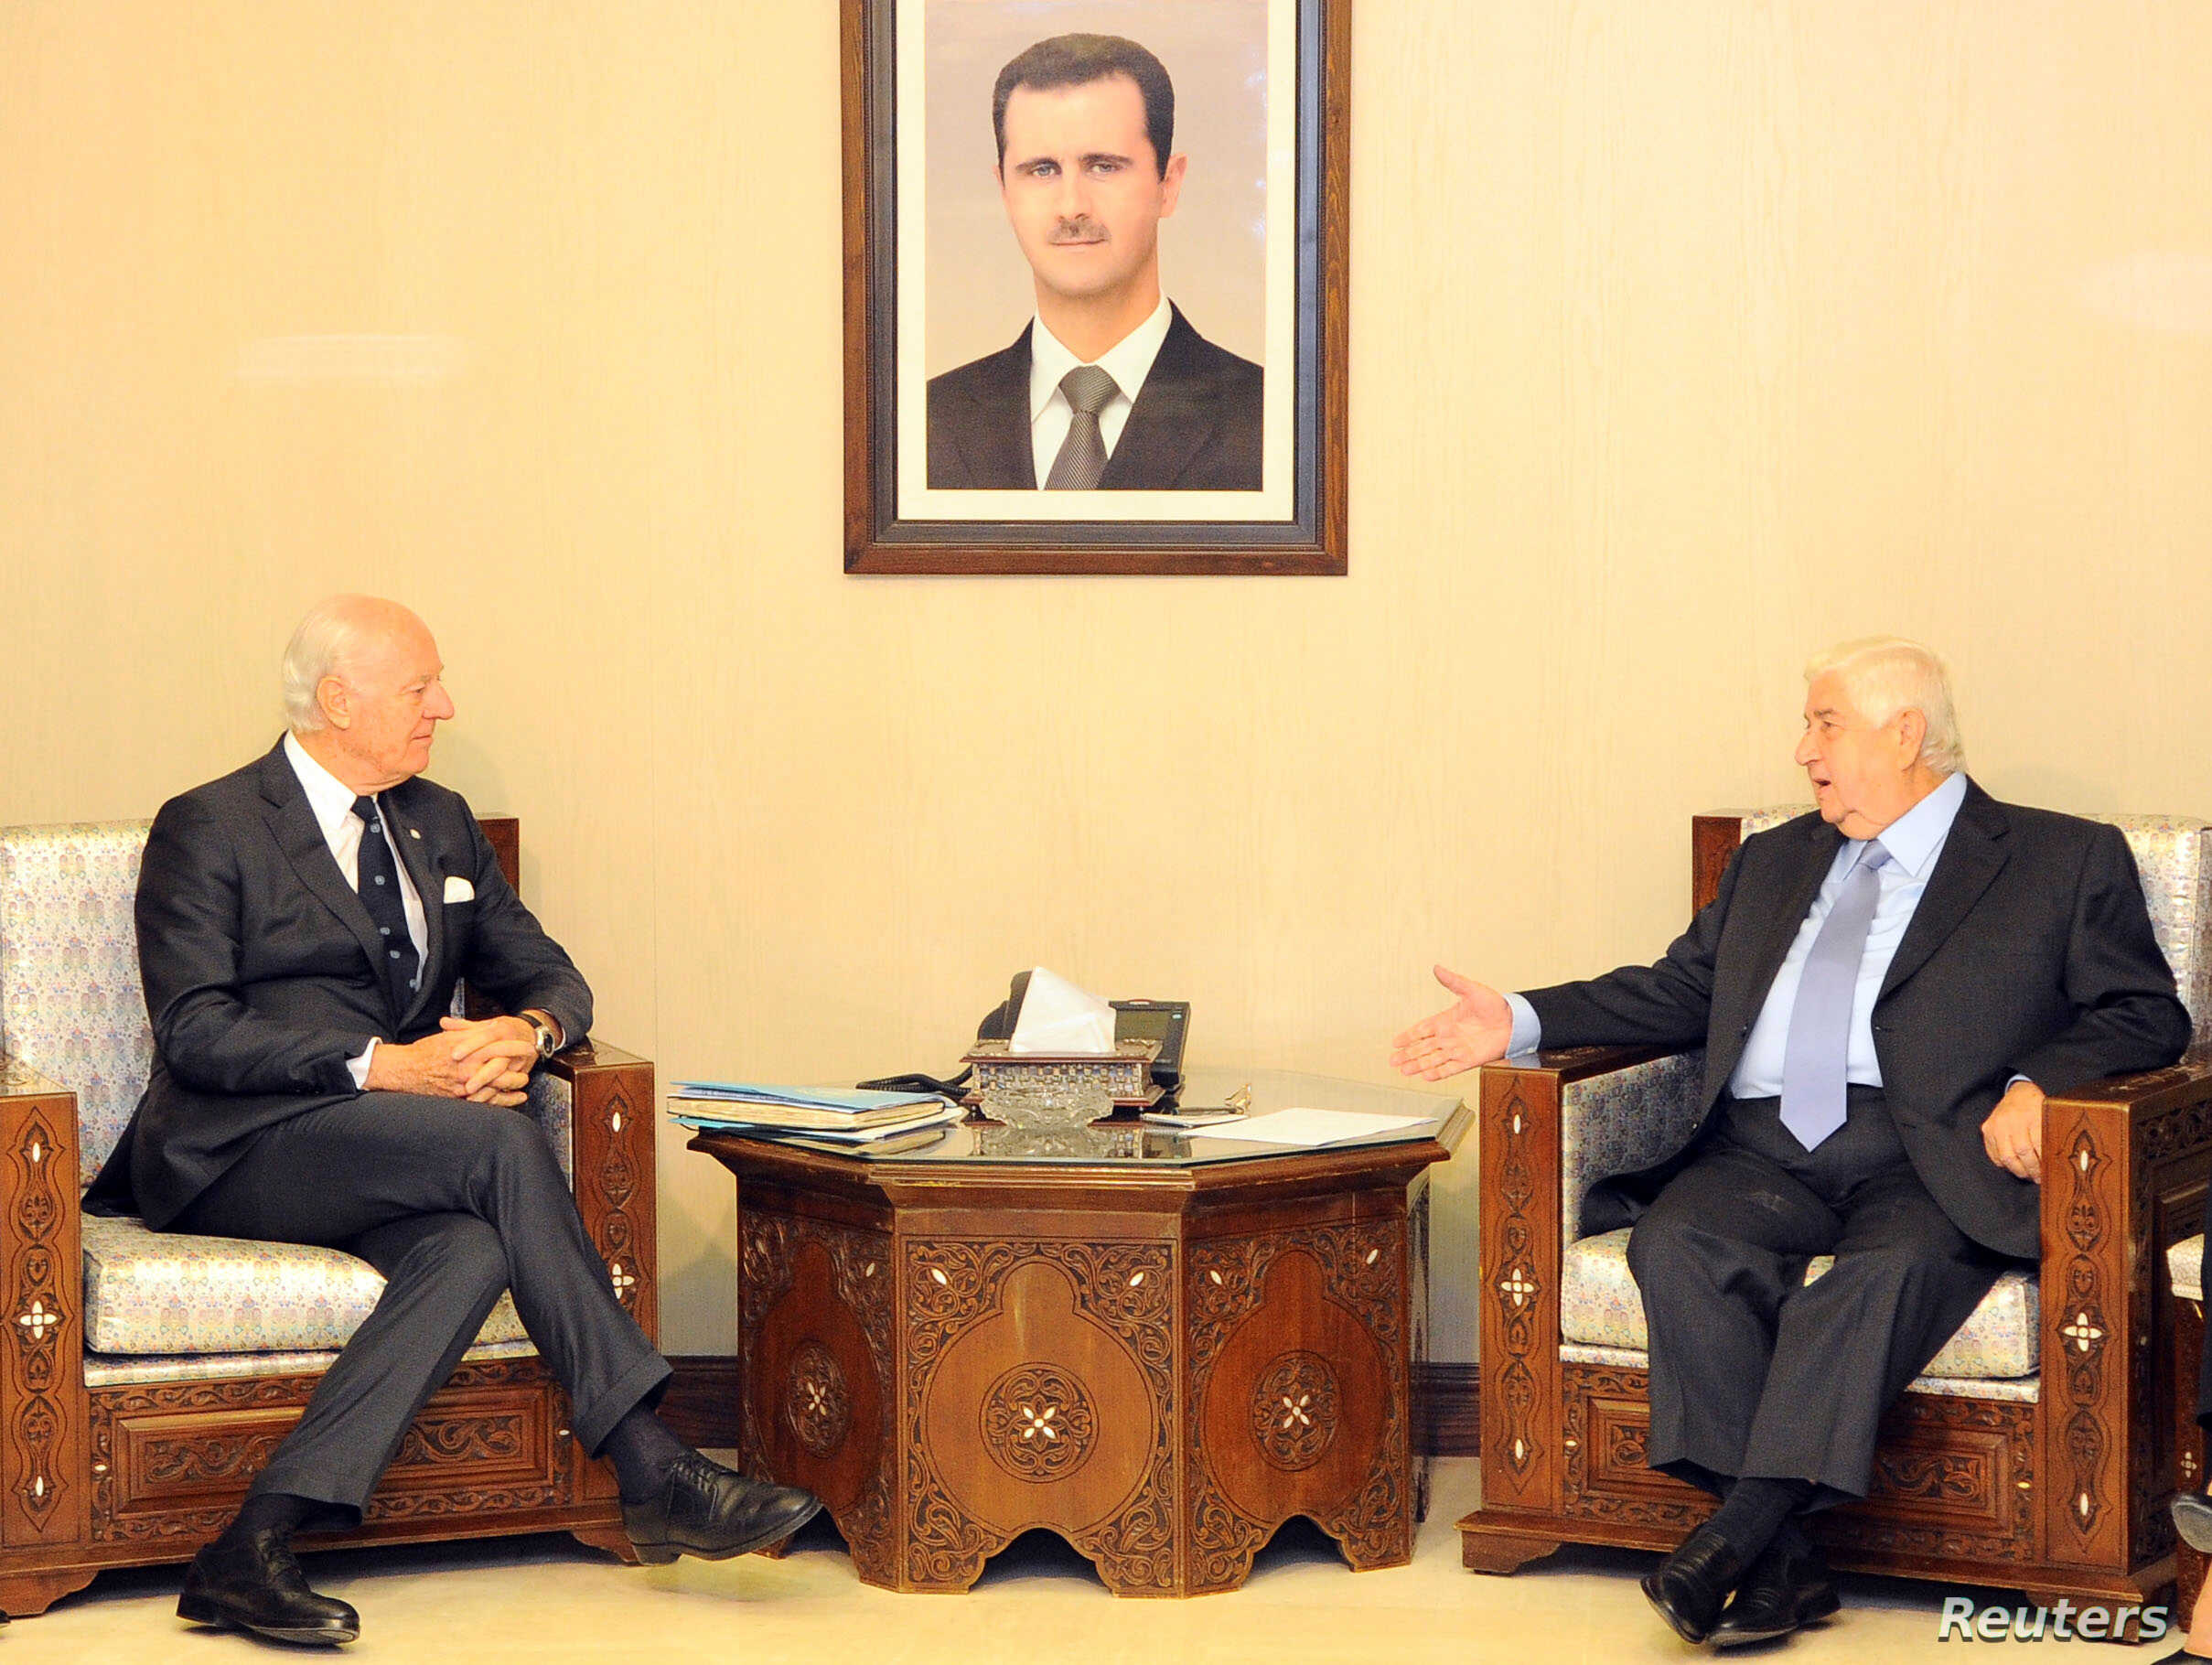 Syrian Foreign Minister Walid al-Muallem meets with U.N. mediator for Syria Staffan de Mistura in Damascus, Syria, in this handout picture provided by SANA, Nov. 20, 2016.